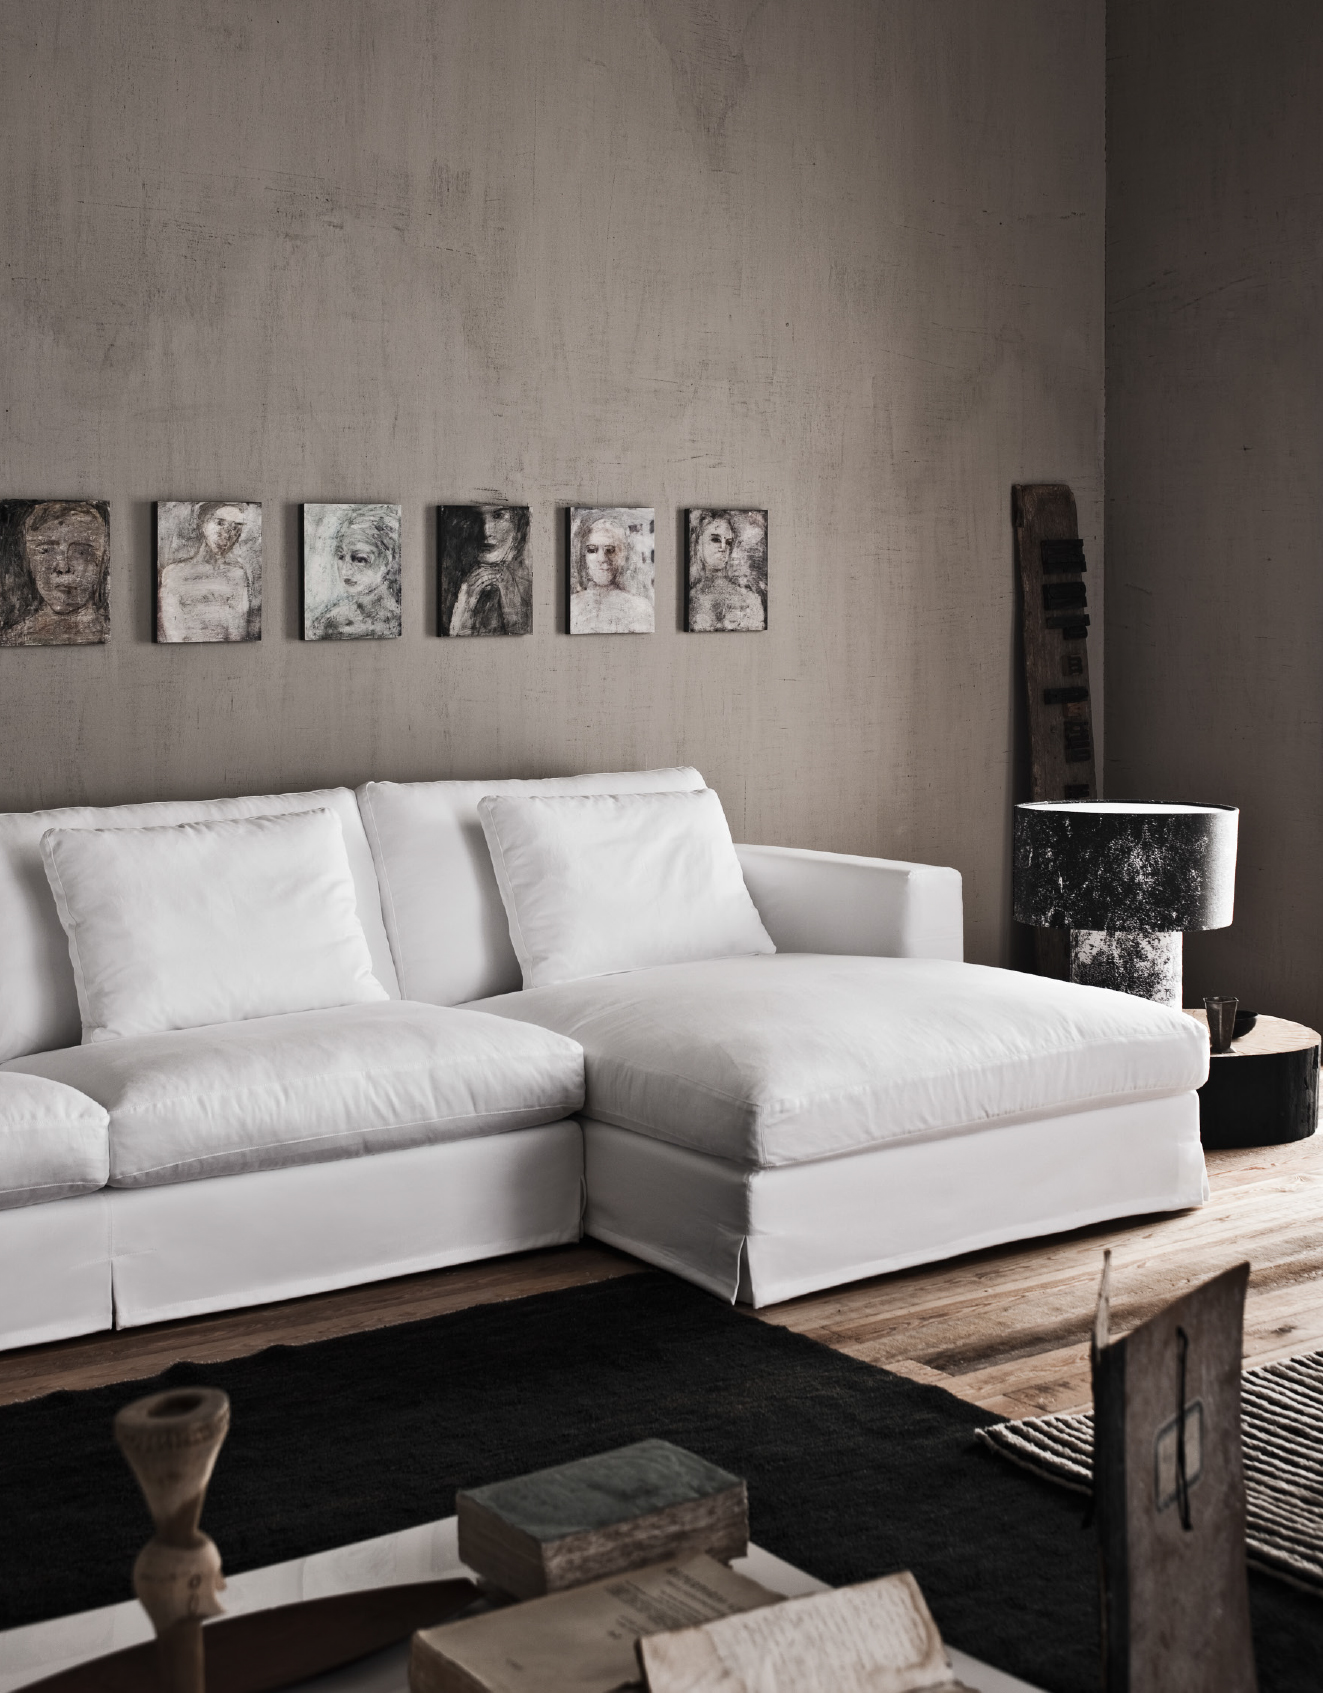 Karma Modular Sofa - The Karma collection is the ultimate expression of the versatility of Saba Italia's product line: a sofa that fits seamlessly into both modern settings and more classical homes. Karma has been riding the wave of success through passing years and fleeting fashions thanks to its almost obsessive attention to detail. Design details ensure comfortable seating despite its depth of 110 cm, and add to its substance without weighing it down. Elegant proportions, timeless design and absolute suitability for any type of covering make Karma feel like the sofa of your destiny. Fully removable covers.  This item is available in various sizes and combinations. Please enquire for more information and prices.  Materials Structure in wood padded with polyurethane foam covered with velfodera coupled with 300gr/sqm pressed polyester fiber. Feet in wood. The seat cushions are padded with goose feathers and 100% polyester fiber divided in sections with polyurethane foam insert. The back cushions are padded with washed and sterilized goose feathers and polyester fiber divided into sections. All the cushions have covering in anti-feather 100% cotton cloth.  | Matter of Stuff